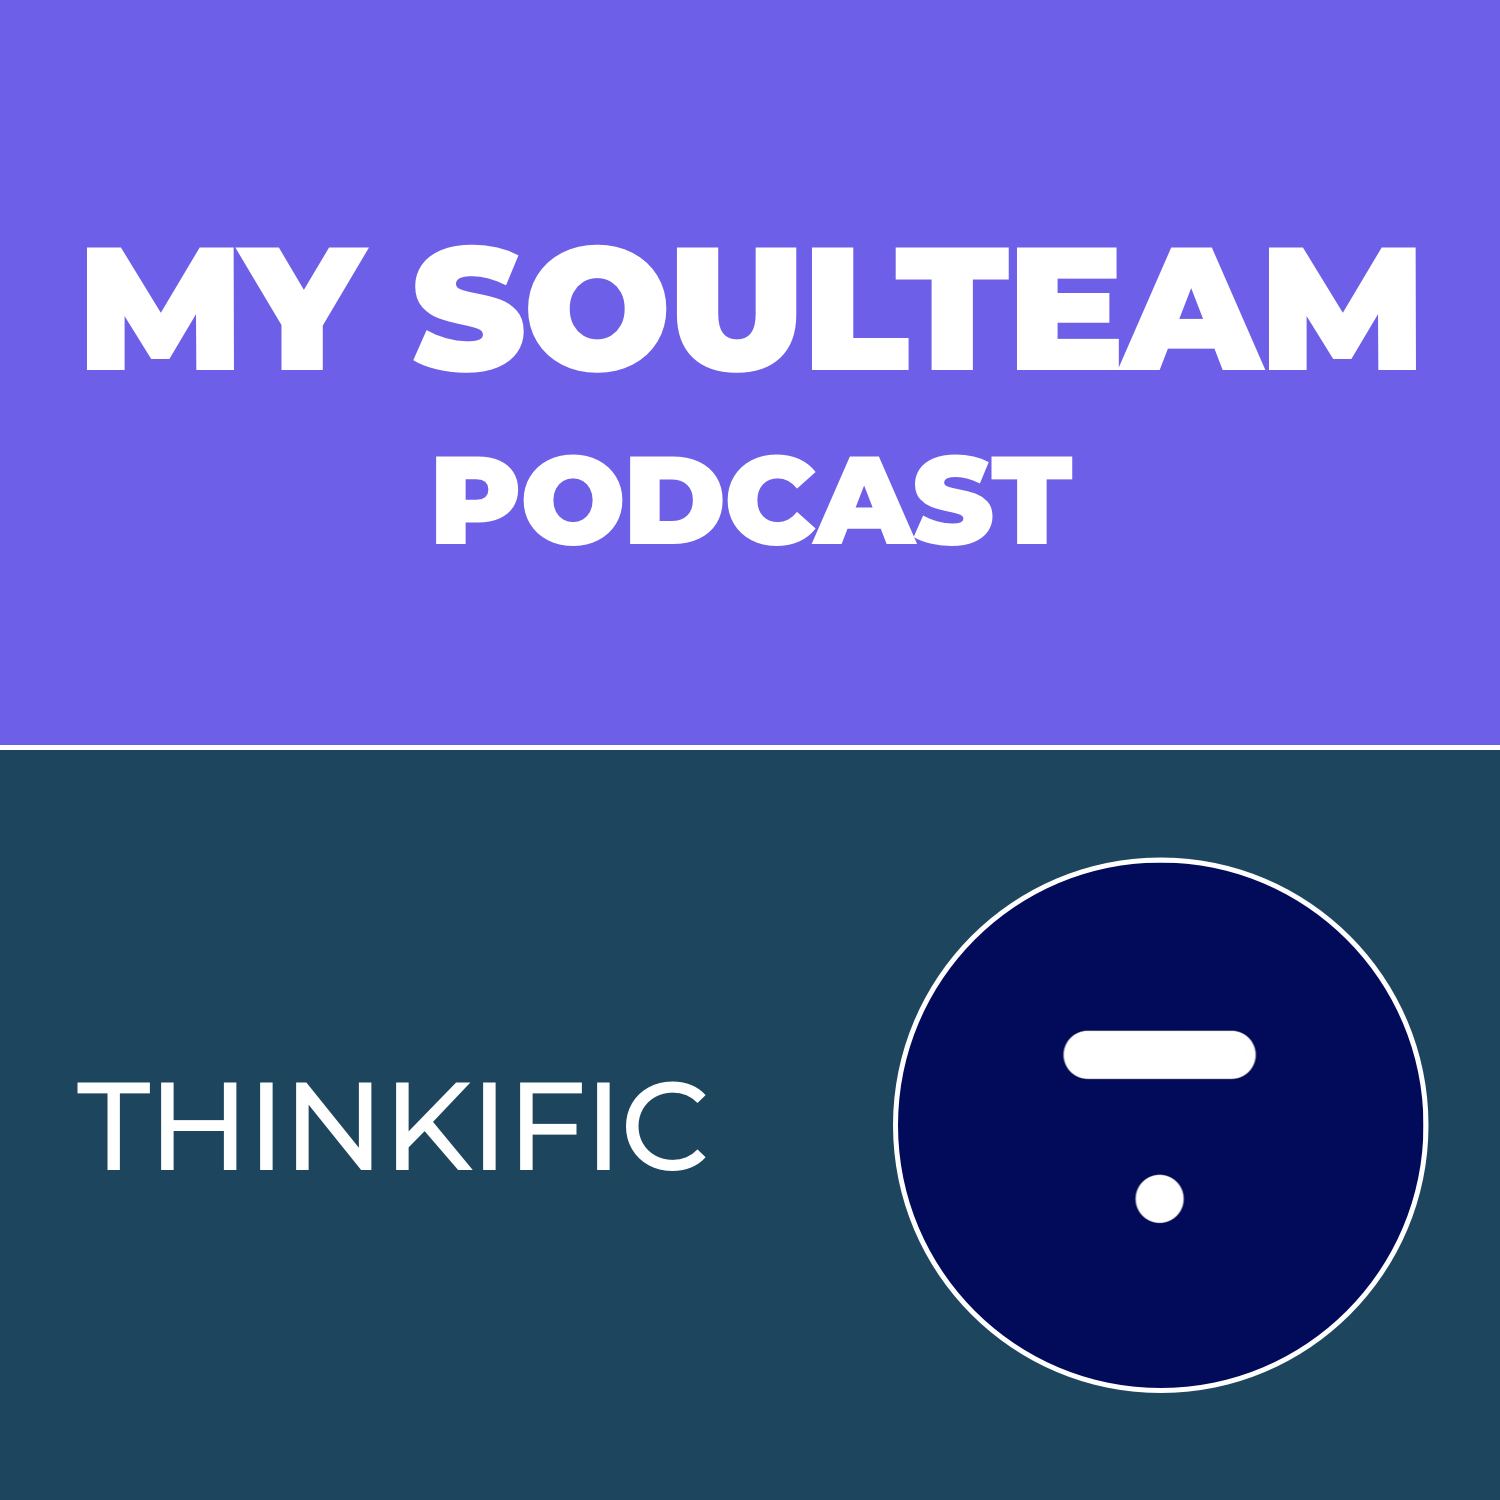 My SoulTeam Podcast - Episode 3 - Thinkific, Greg Smith